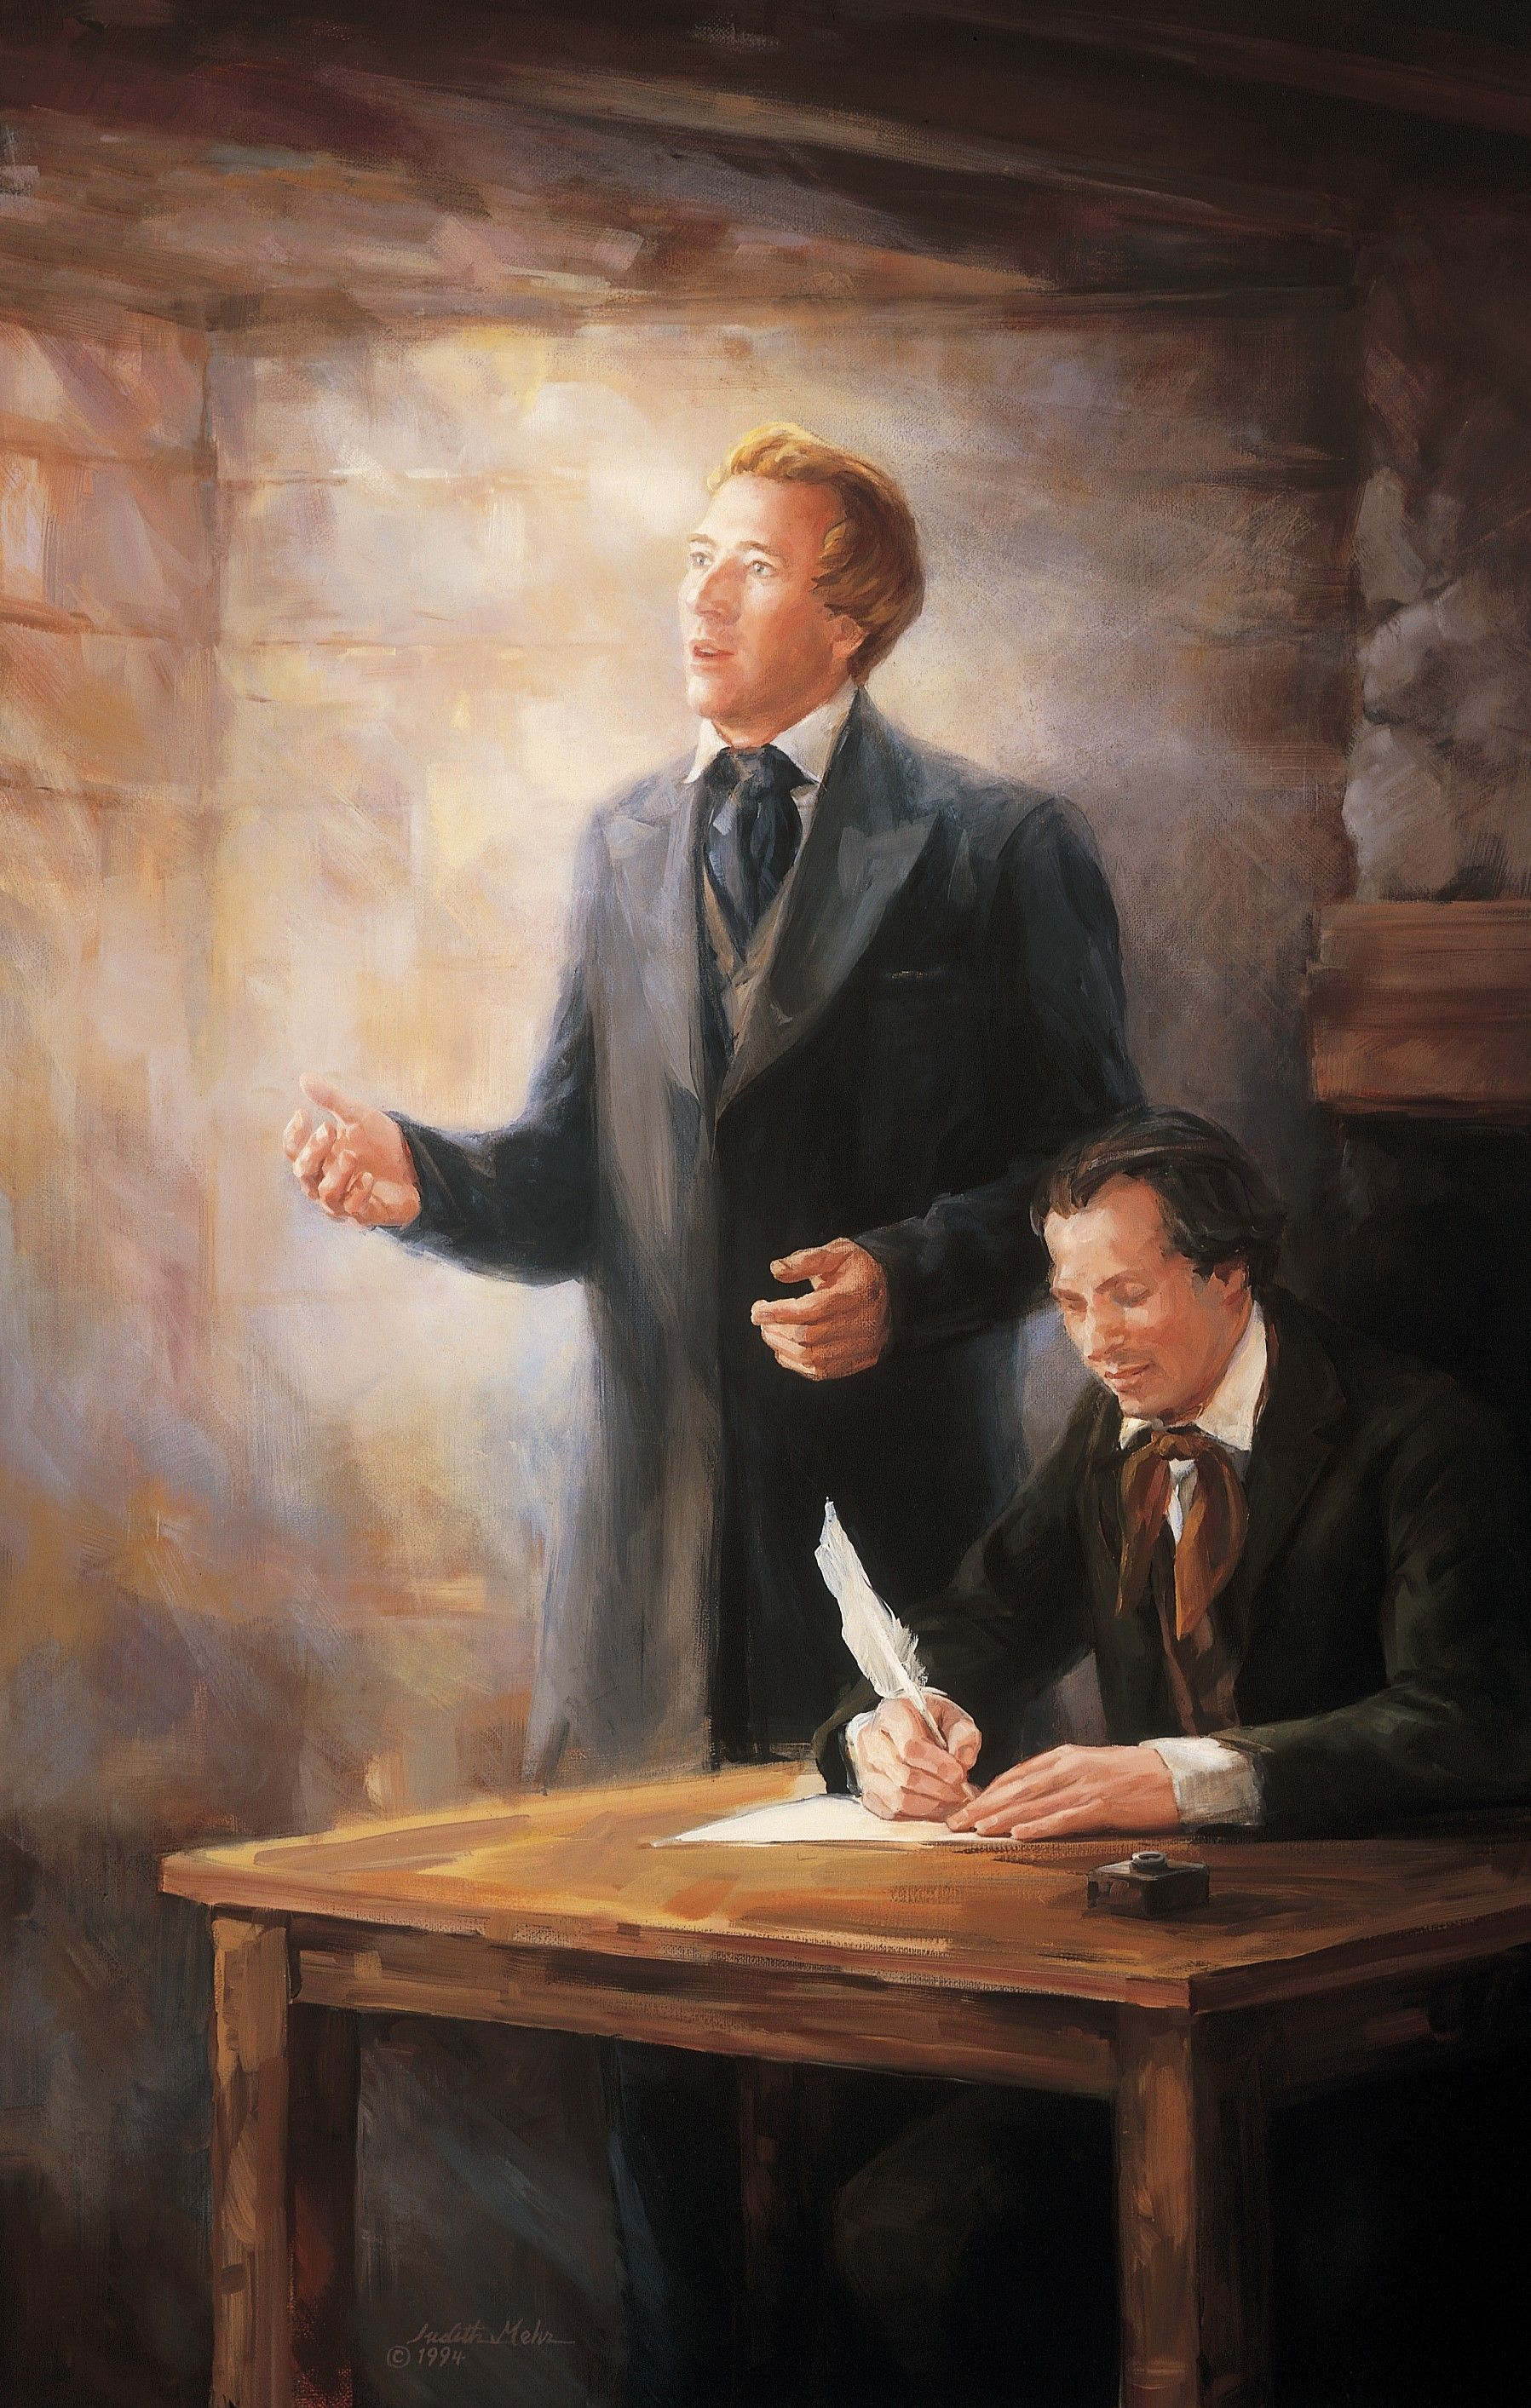 Revelation Given to Joseph Smith at the Organization of the Church, by Judith A. Mehr